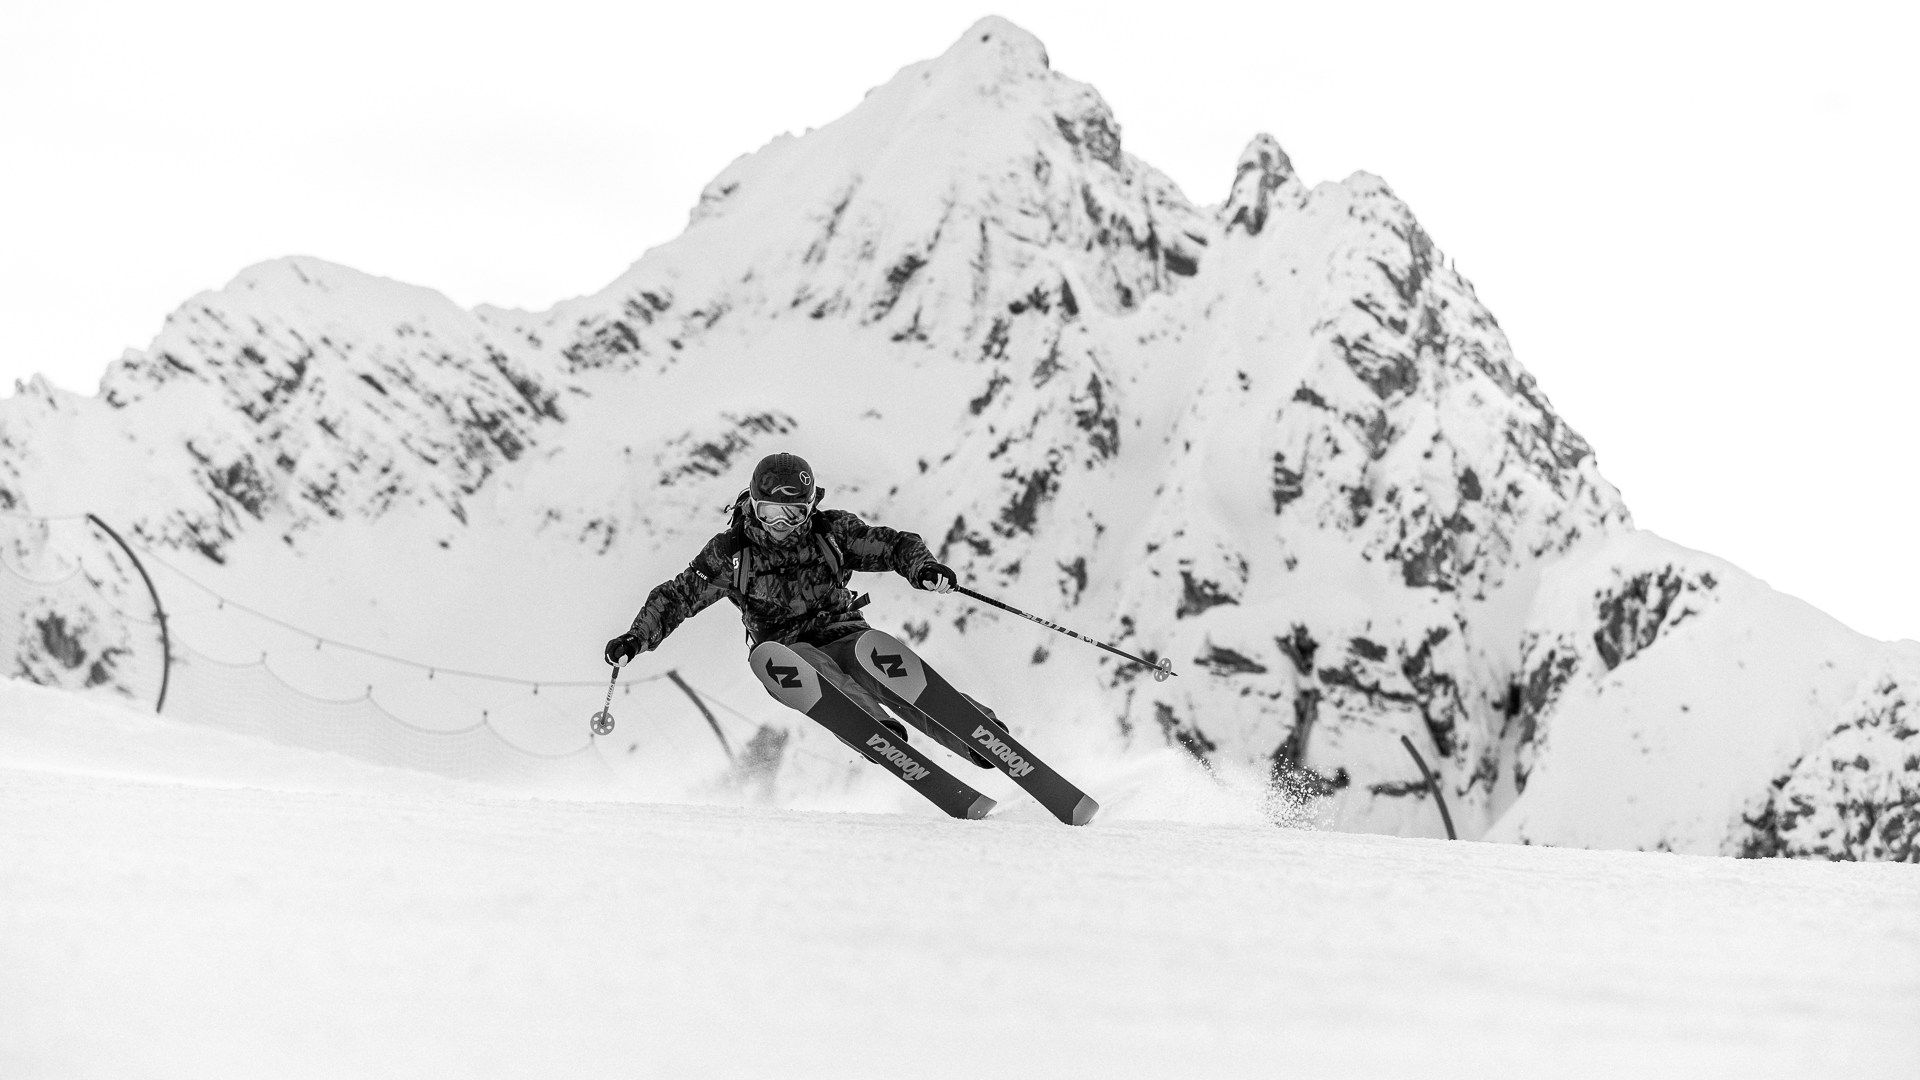 Why Nordica is Changing Their Most Trusted Ski Line